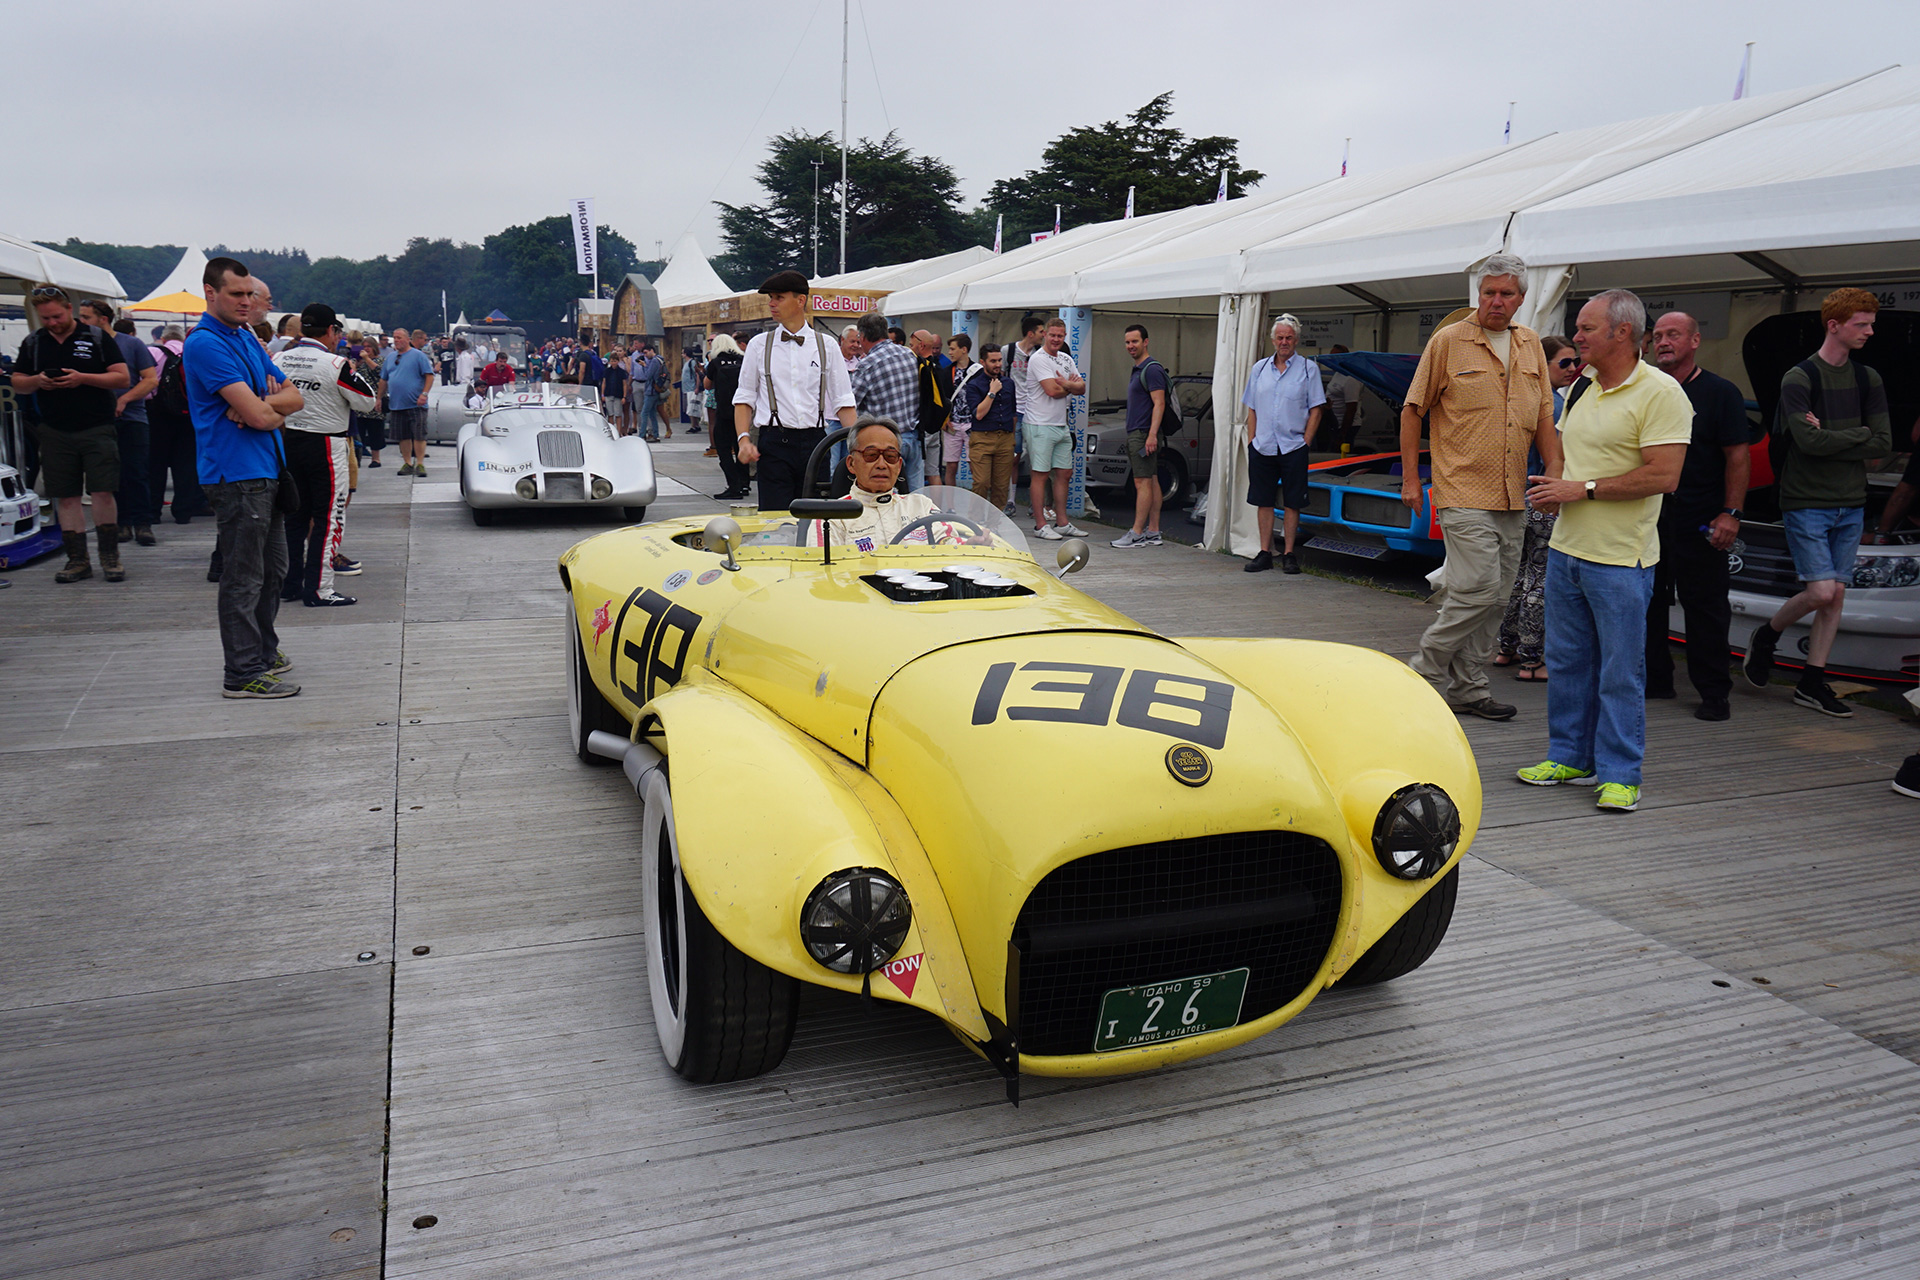 Goodwood FOS, Old Yeller Buick